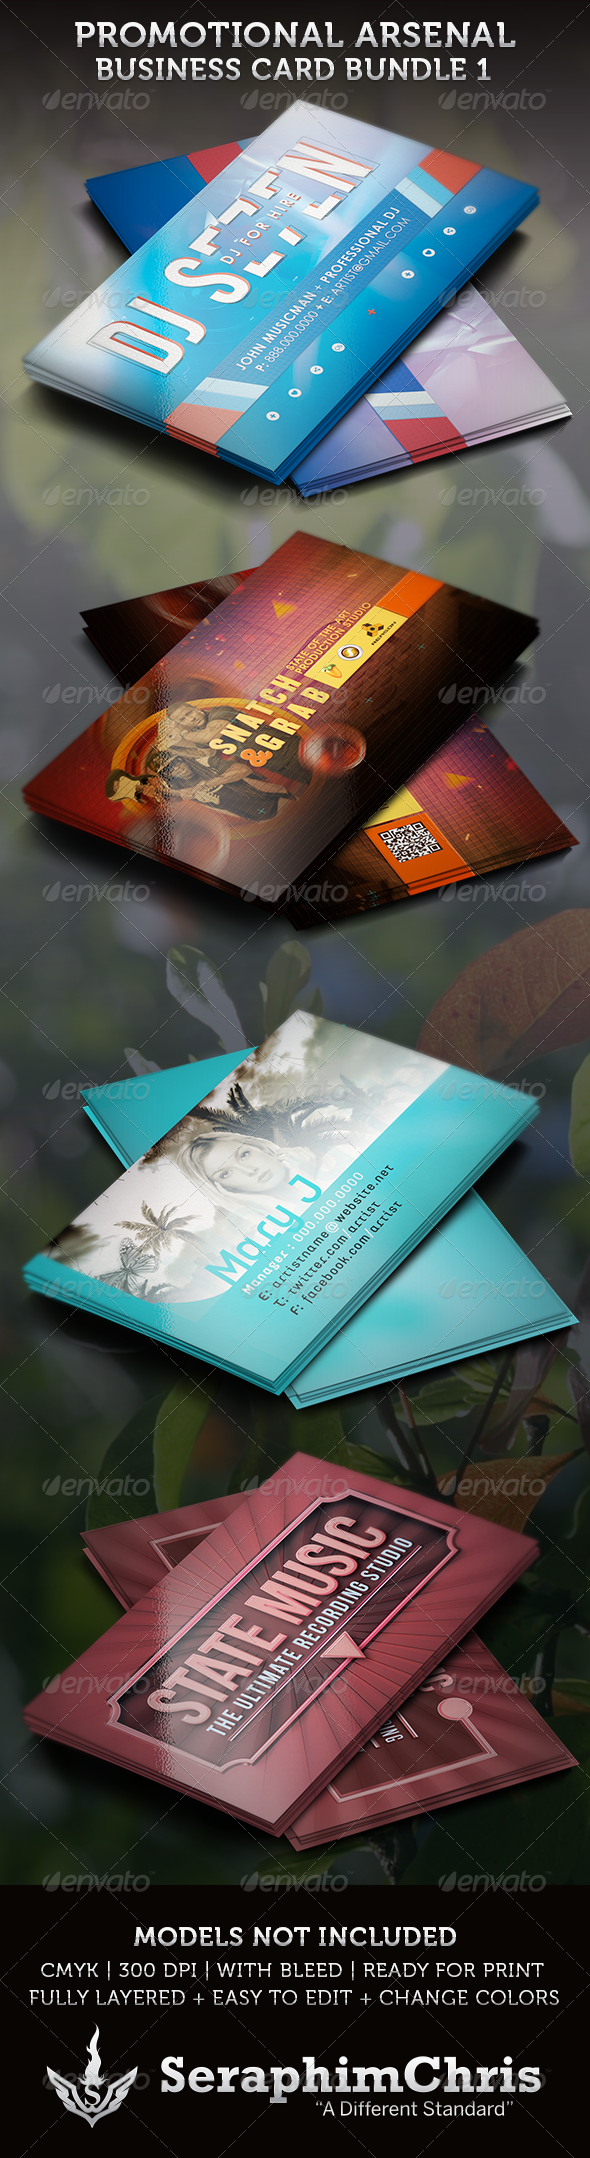 GraphicRiver Promotional Arsenal Business Card Bundle 1 3630509